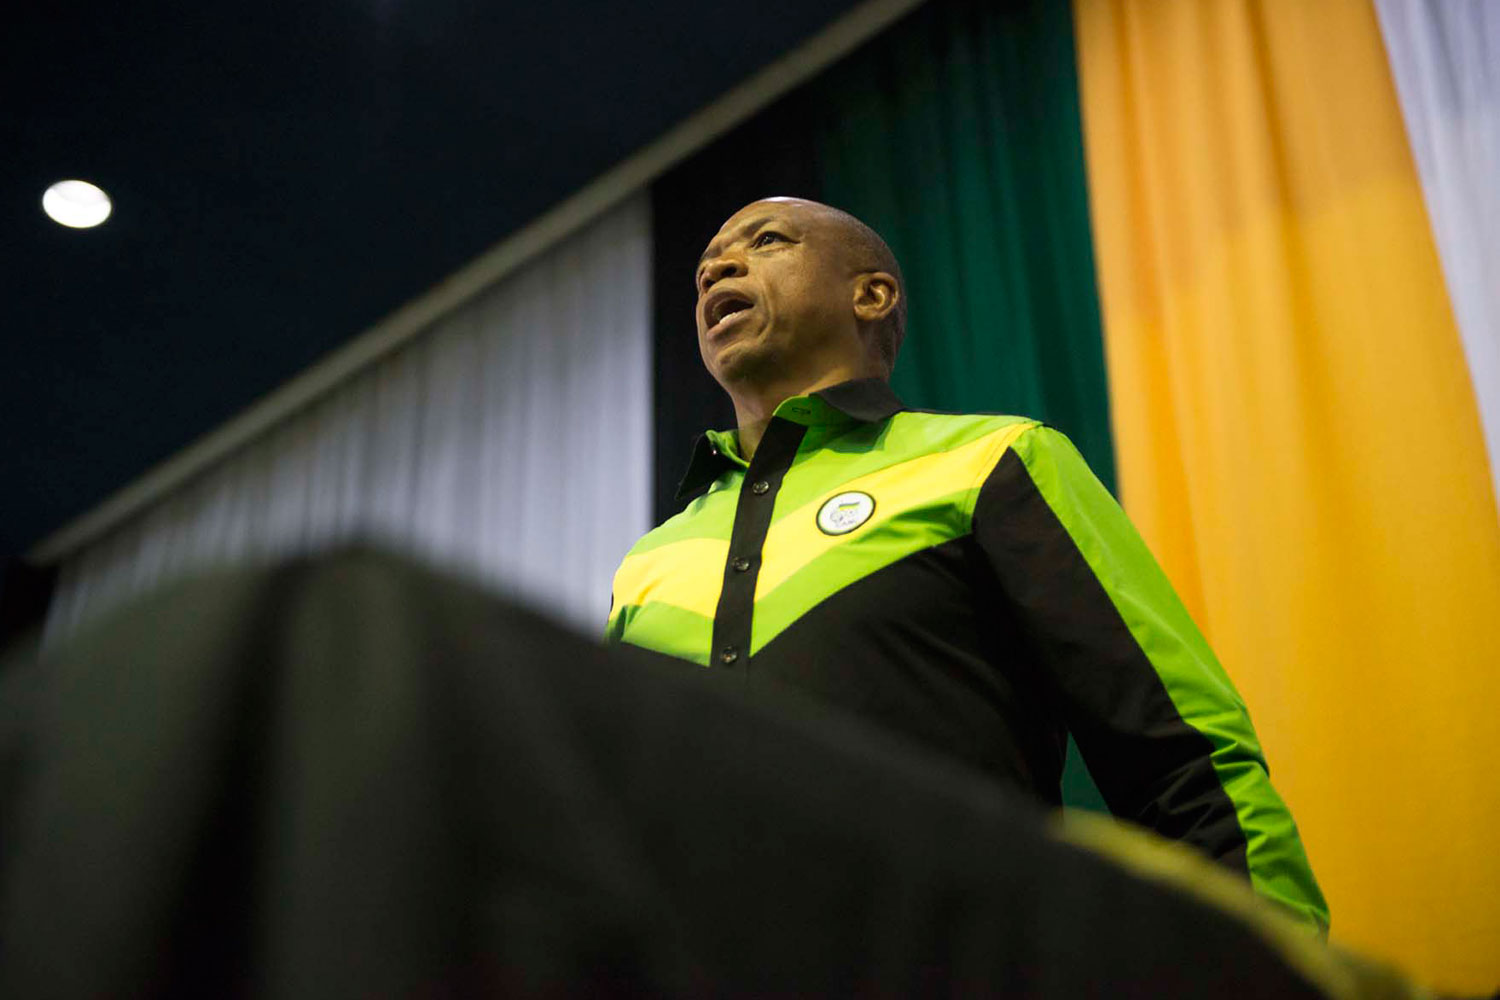 ANC North West leader Supra Mahumapelo wants public representatives to sign a resignation form upfront in order to deal with cases of ill-discipline. Paul Botes, M&G